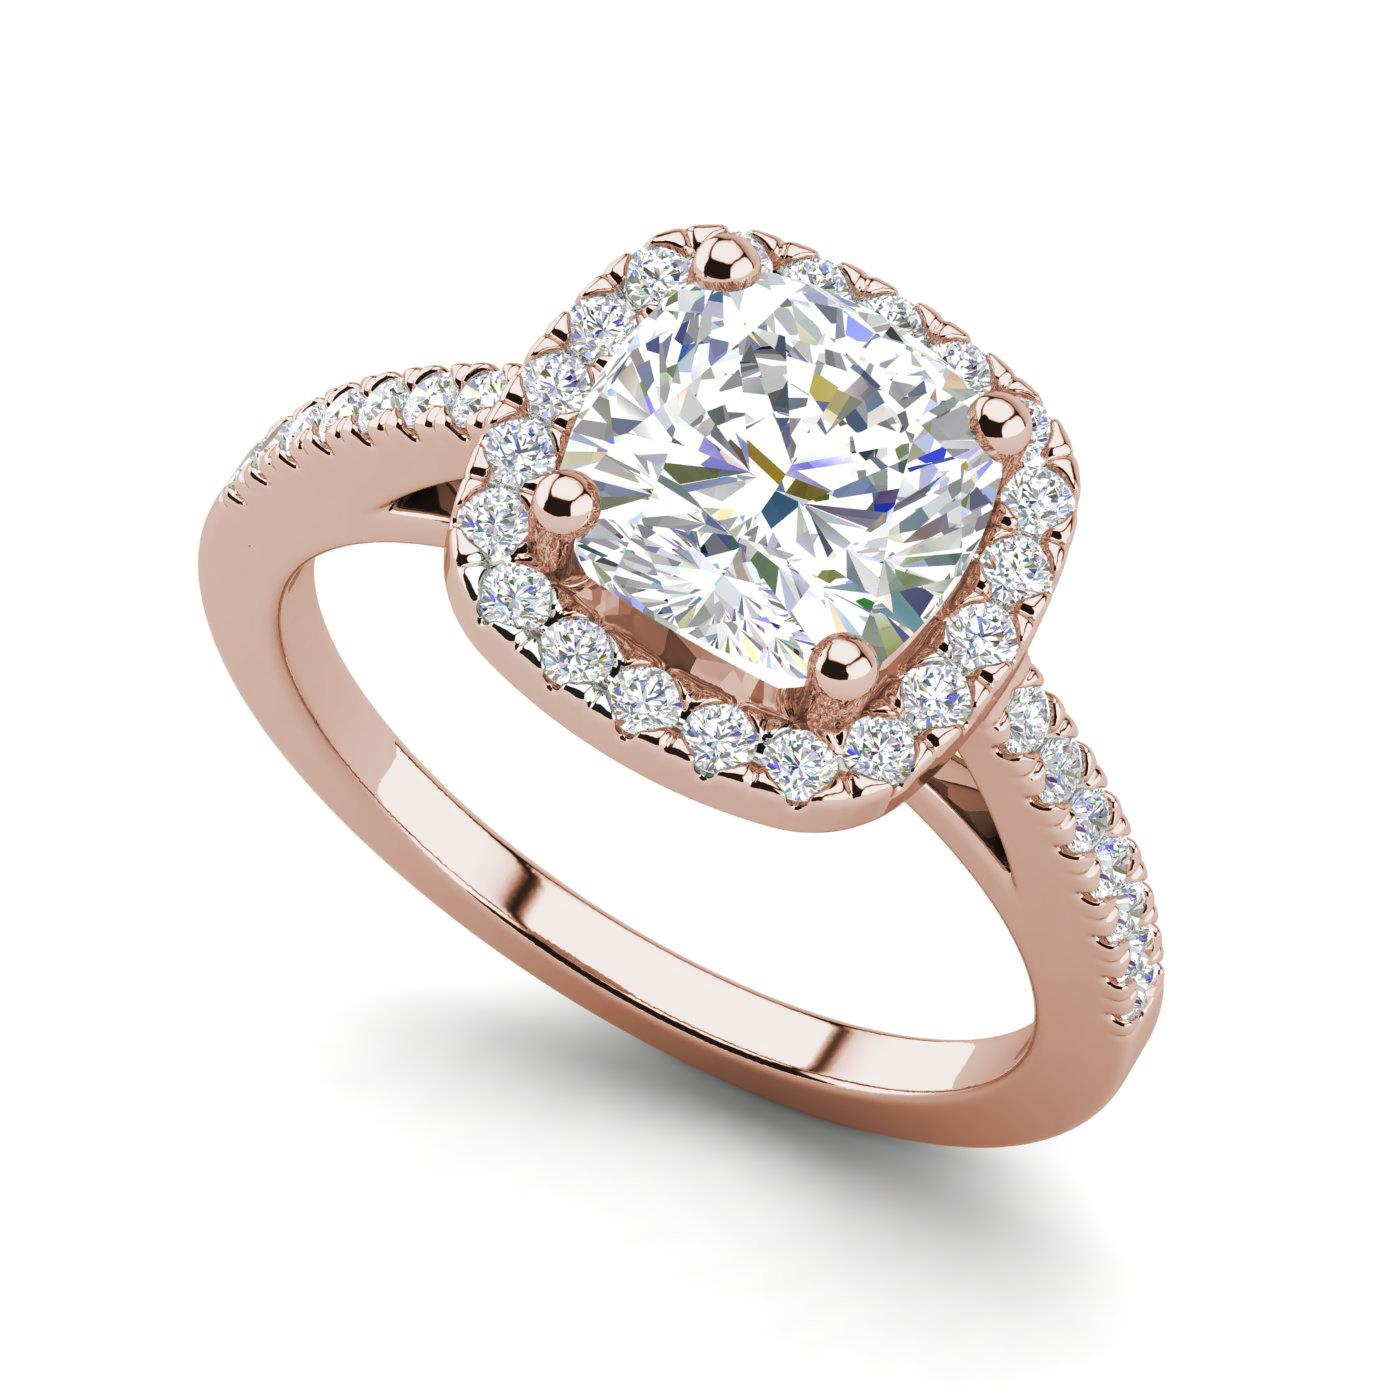 rings angelix points cut login cushion or ring earn create account engagement to diamond an